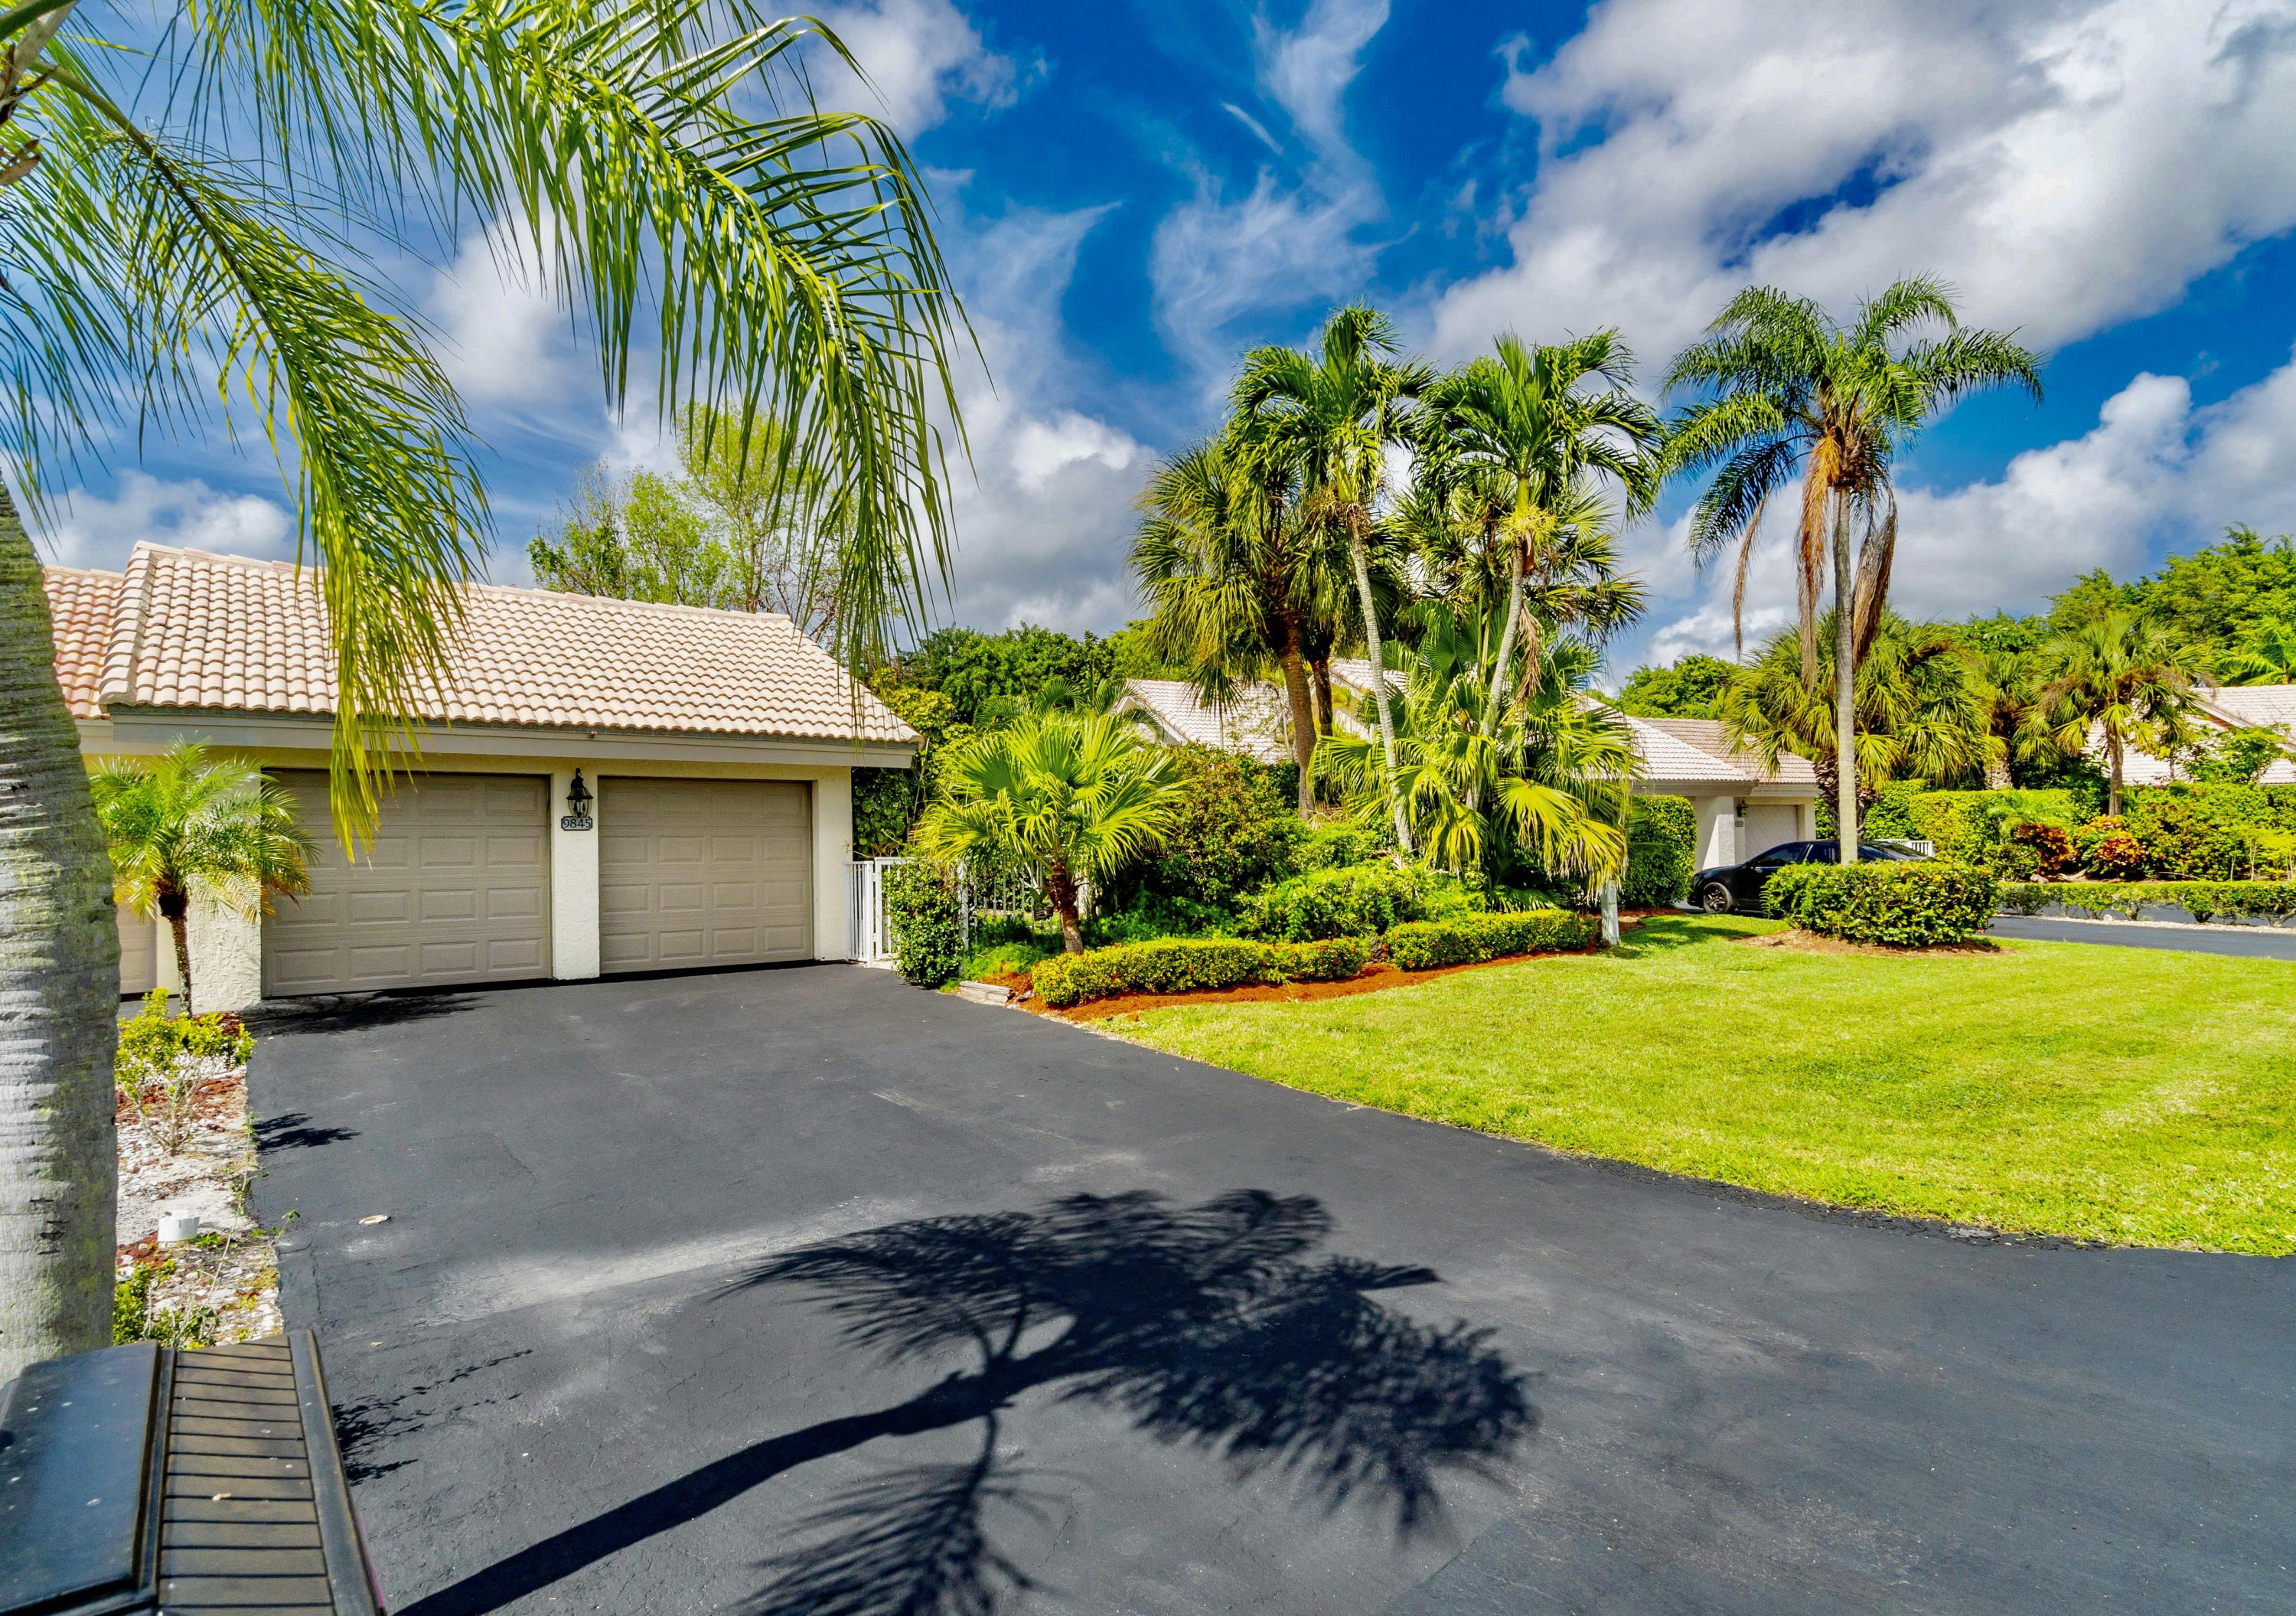 Details for 9845 Erica Court, Boca Raton, FL 33496